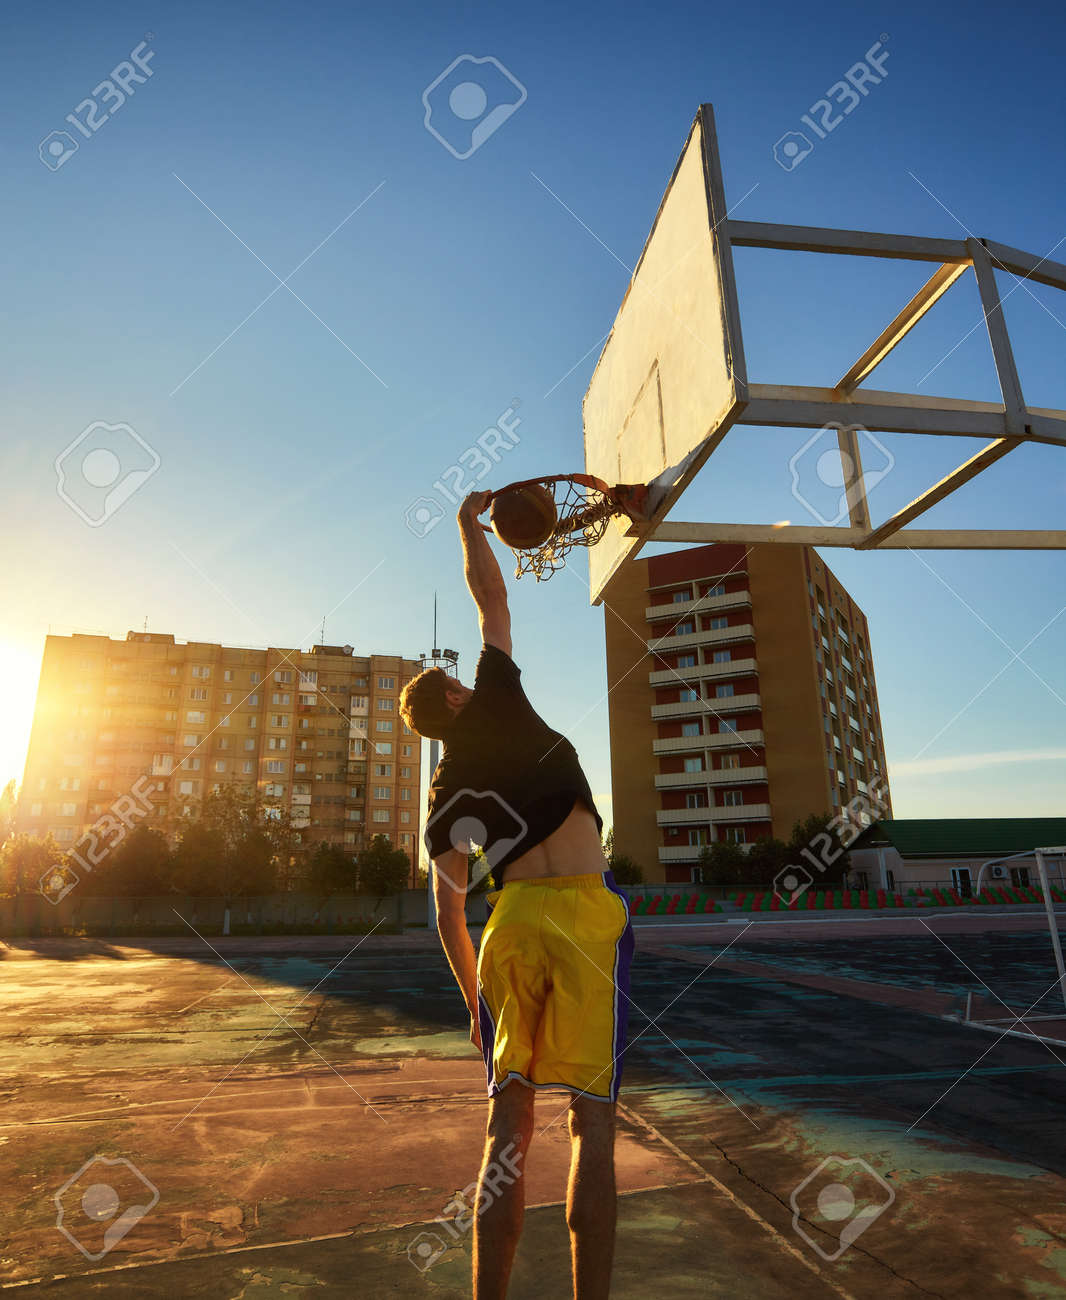 A young basketball player driving to the hoop for a slam dunk. - 169021409